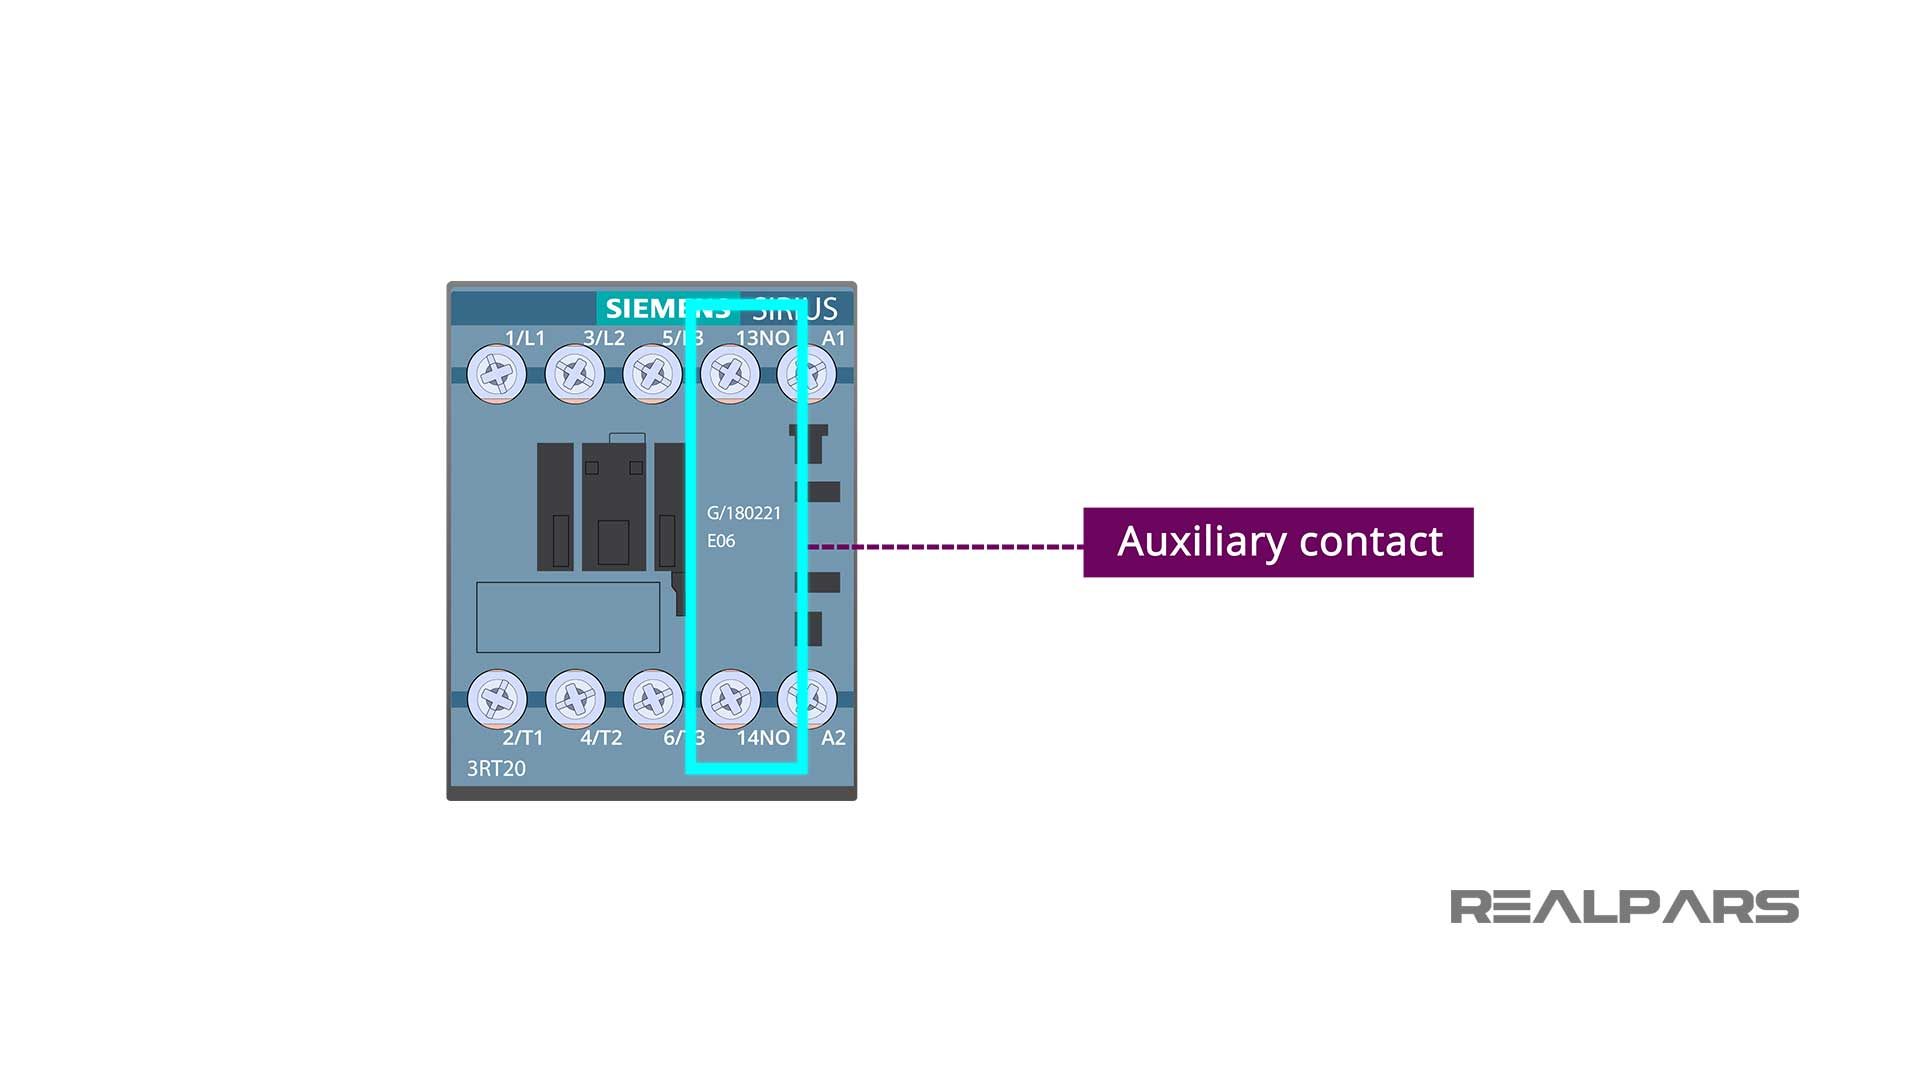 Auxiliary contact